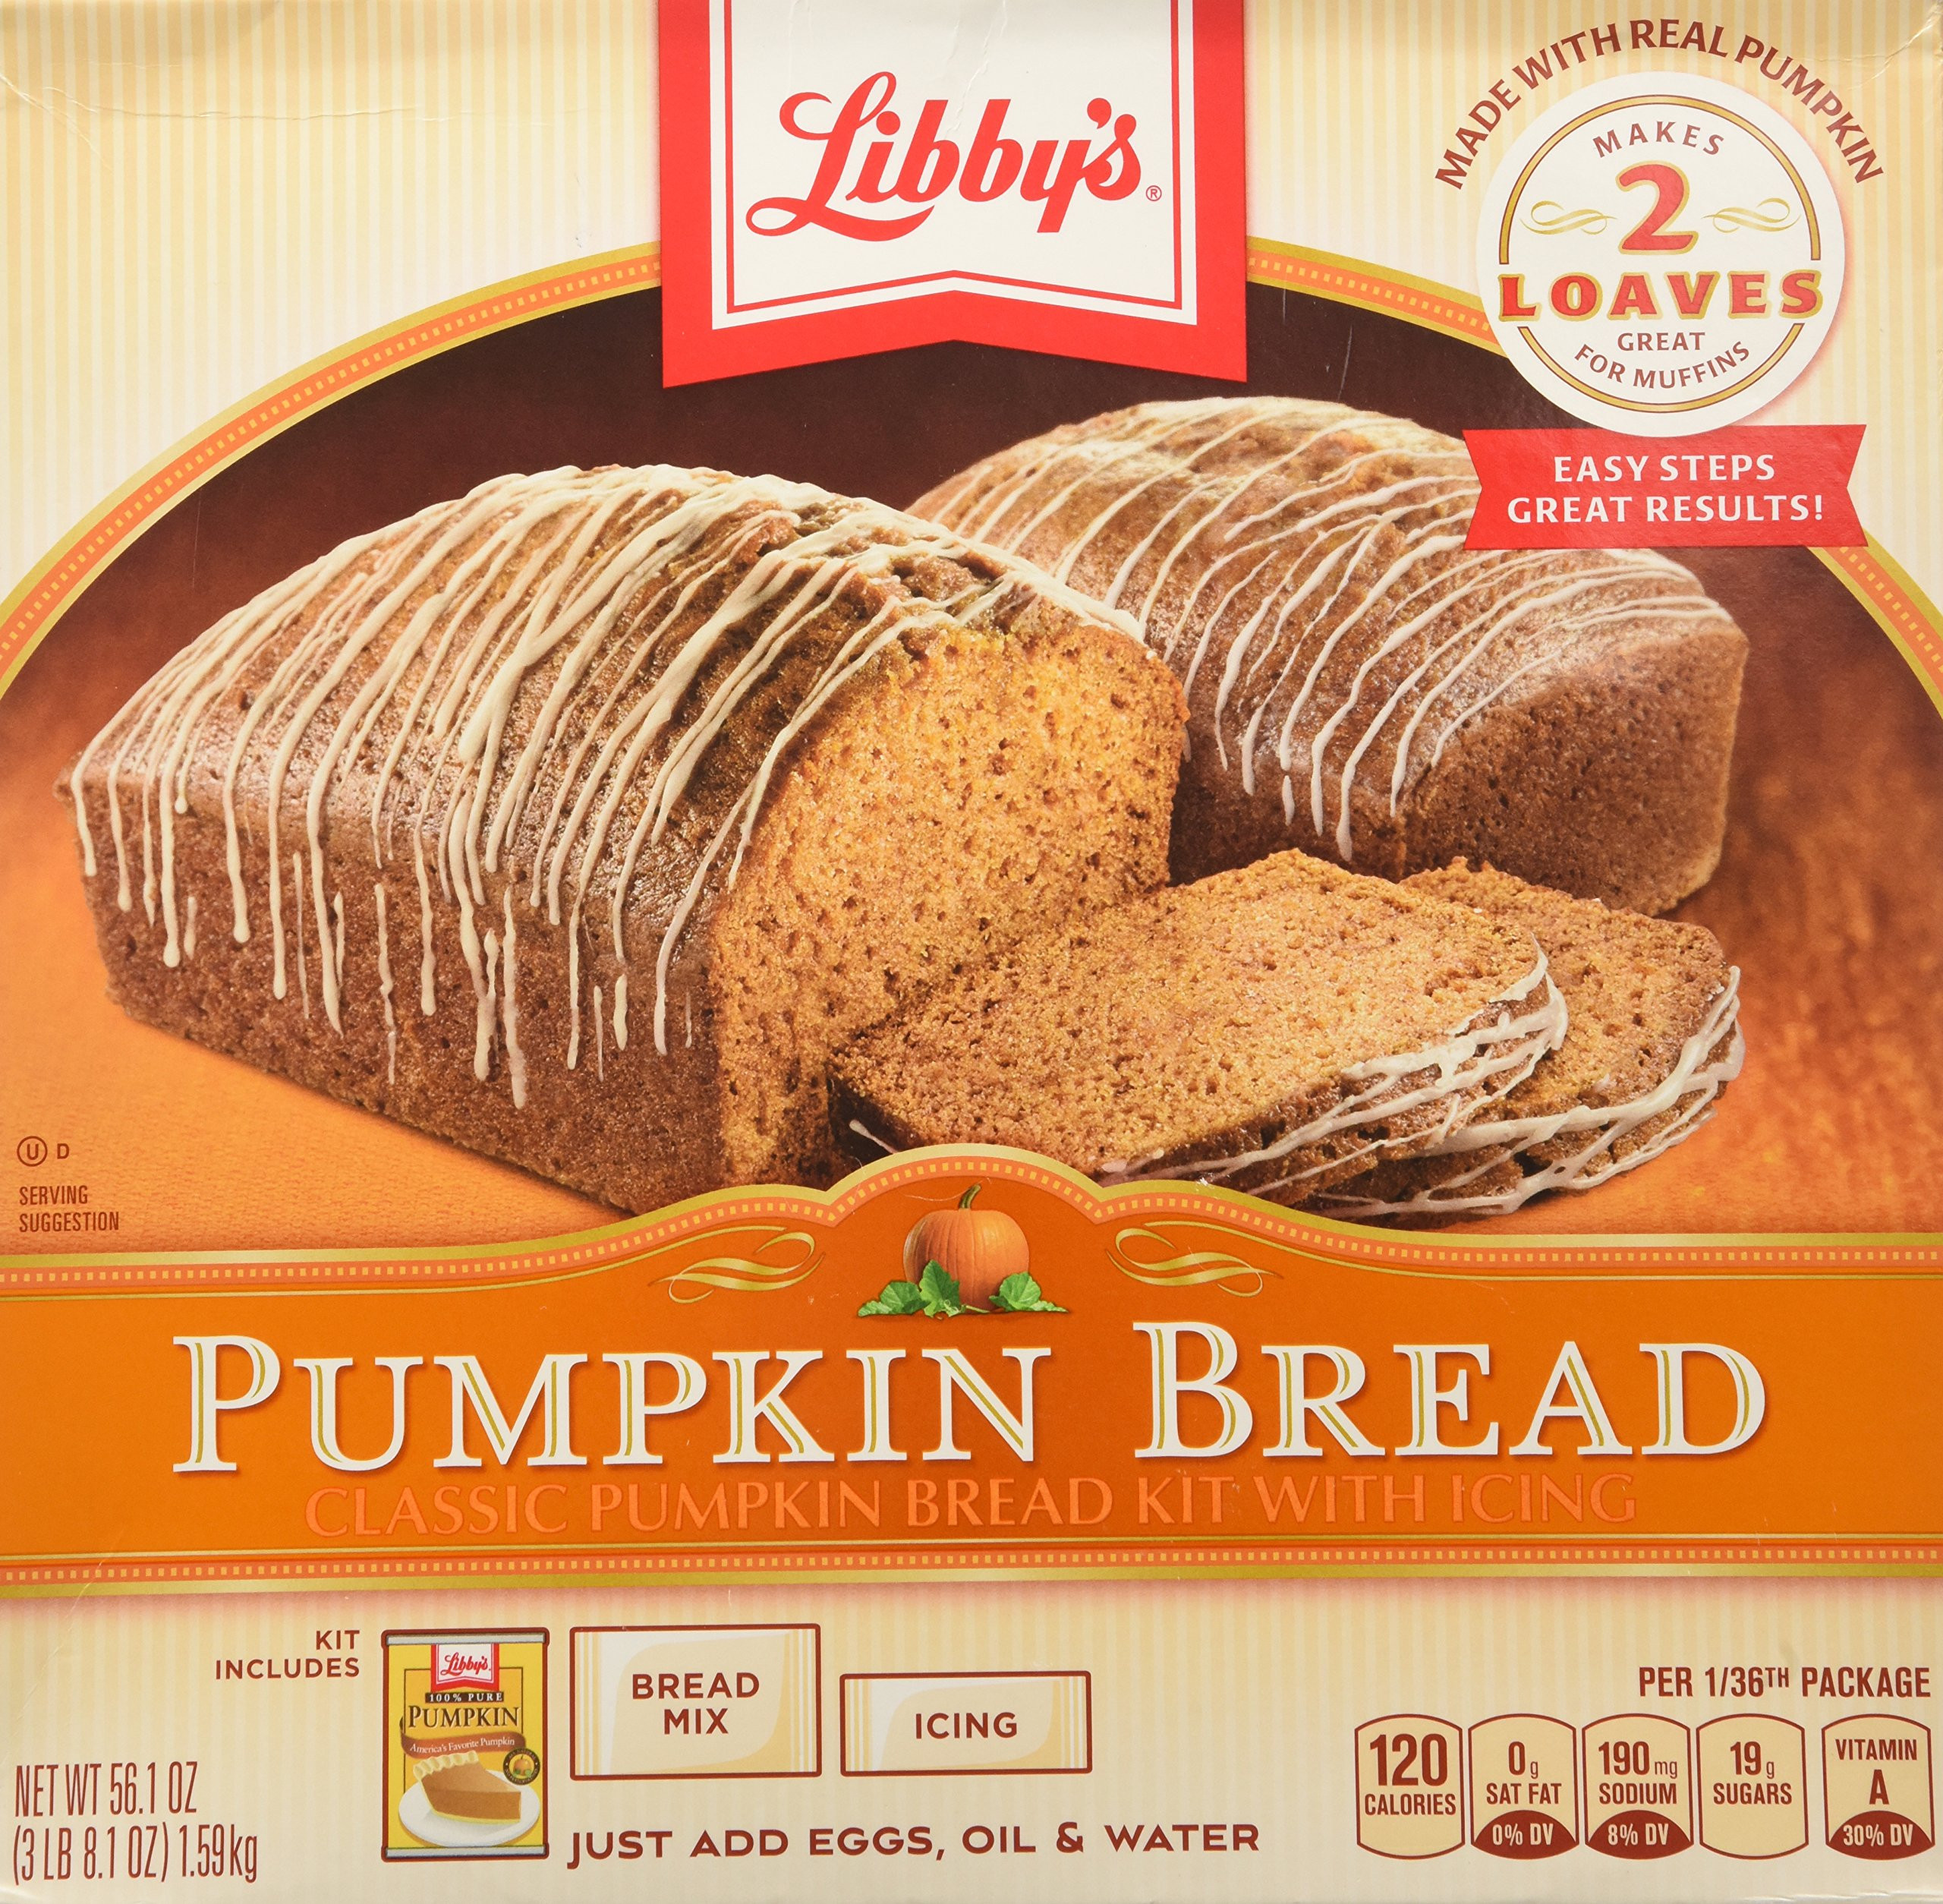 Libbys Pumpkin Bread  Amazon Libby s Pumpkin Bread Kit with Icing 56 1